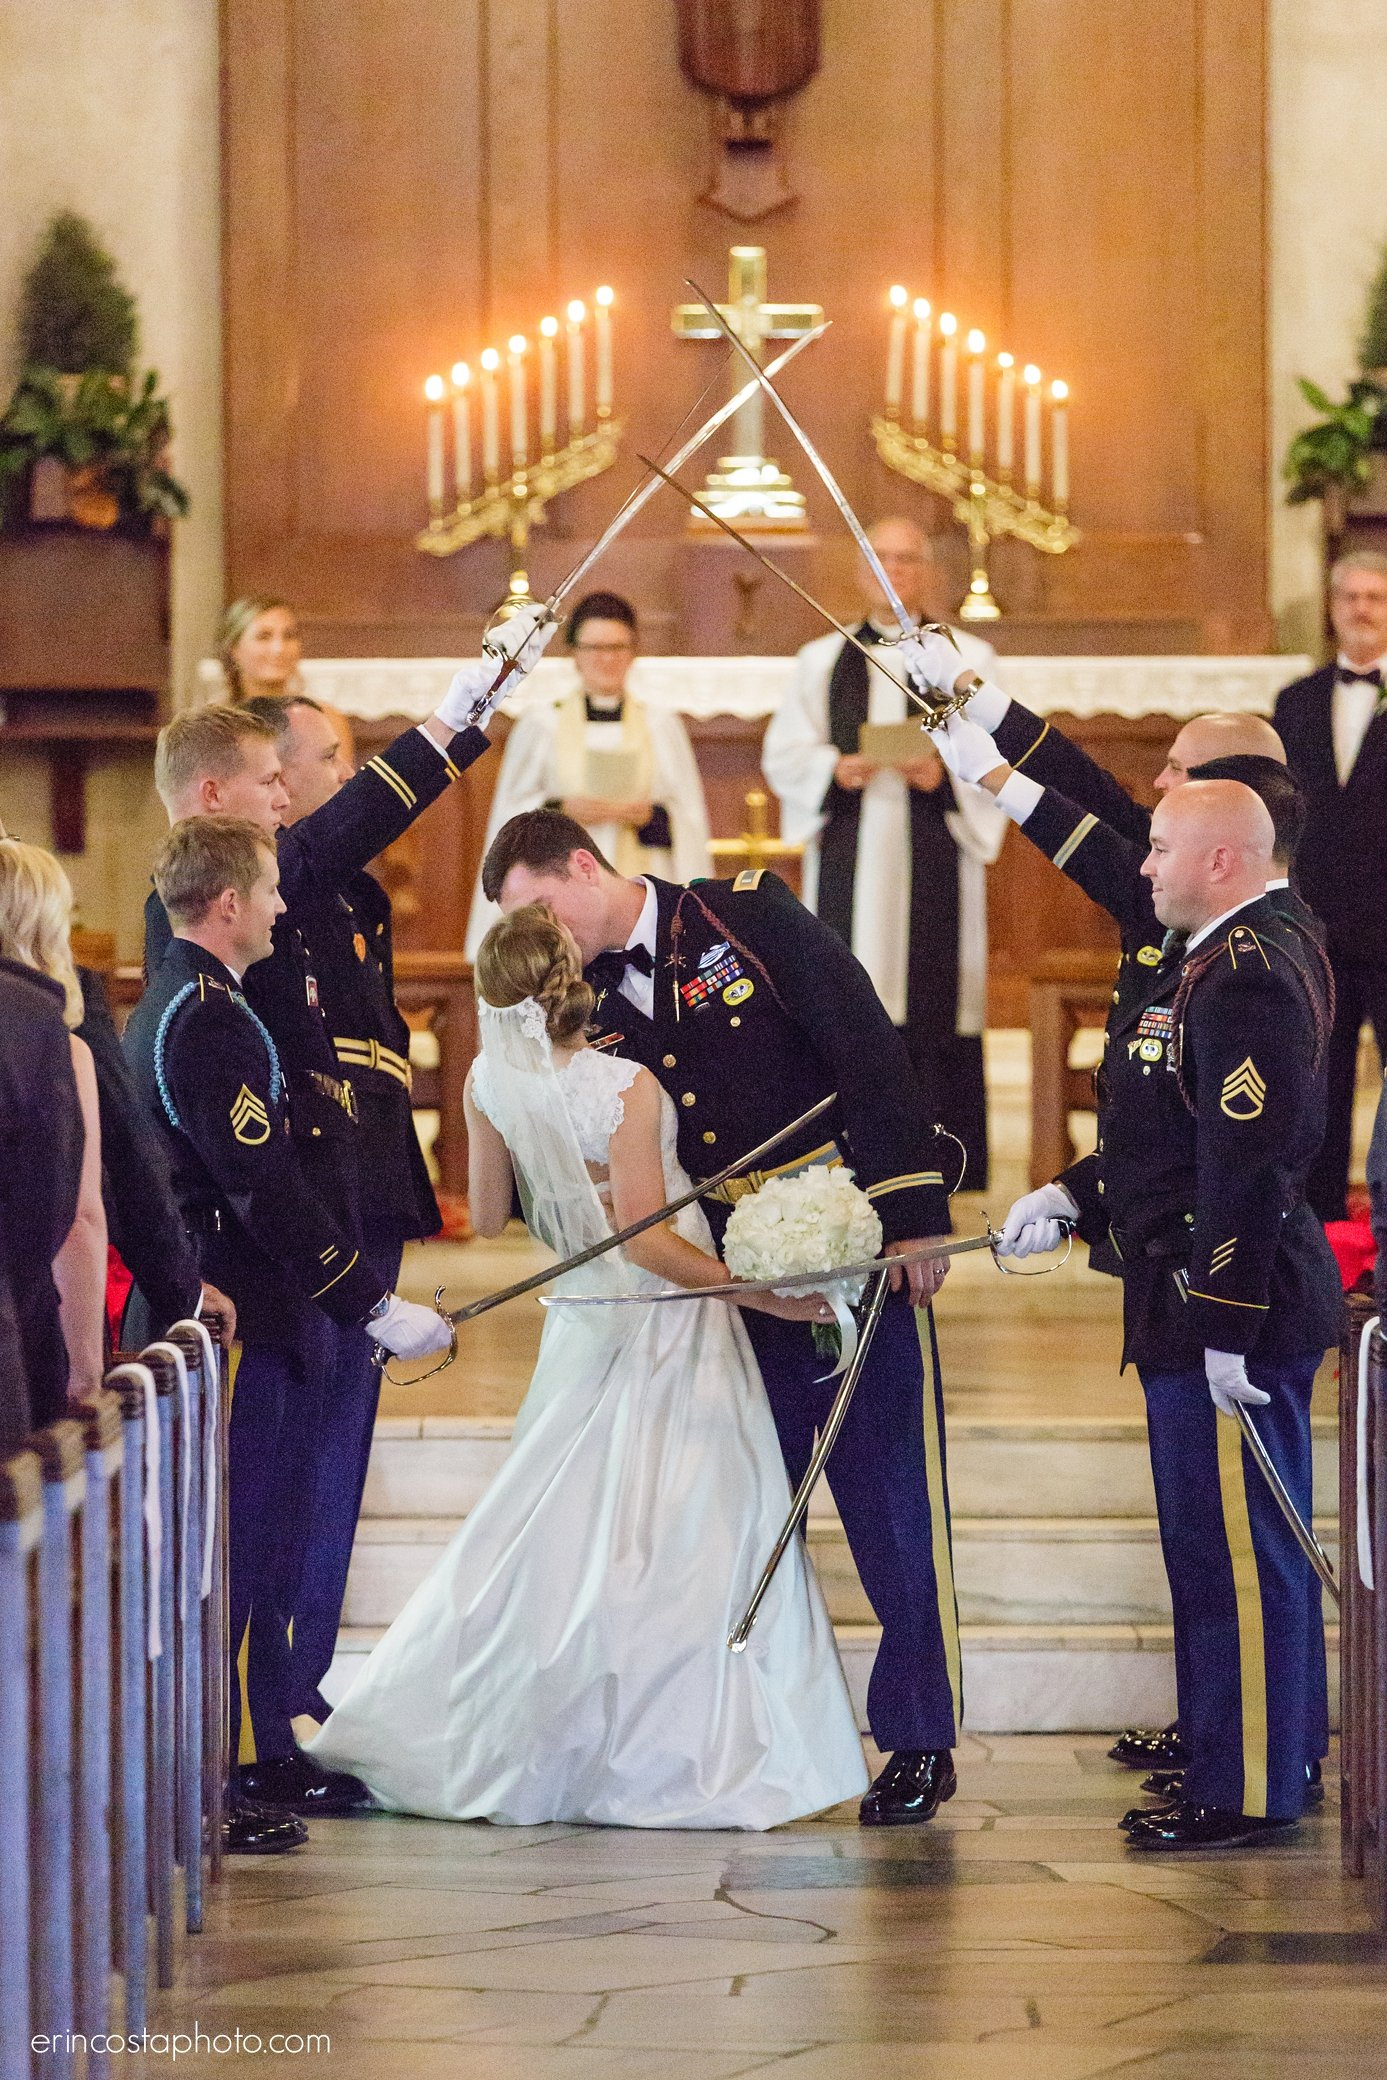 wilmington-church-ceremony.jpg